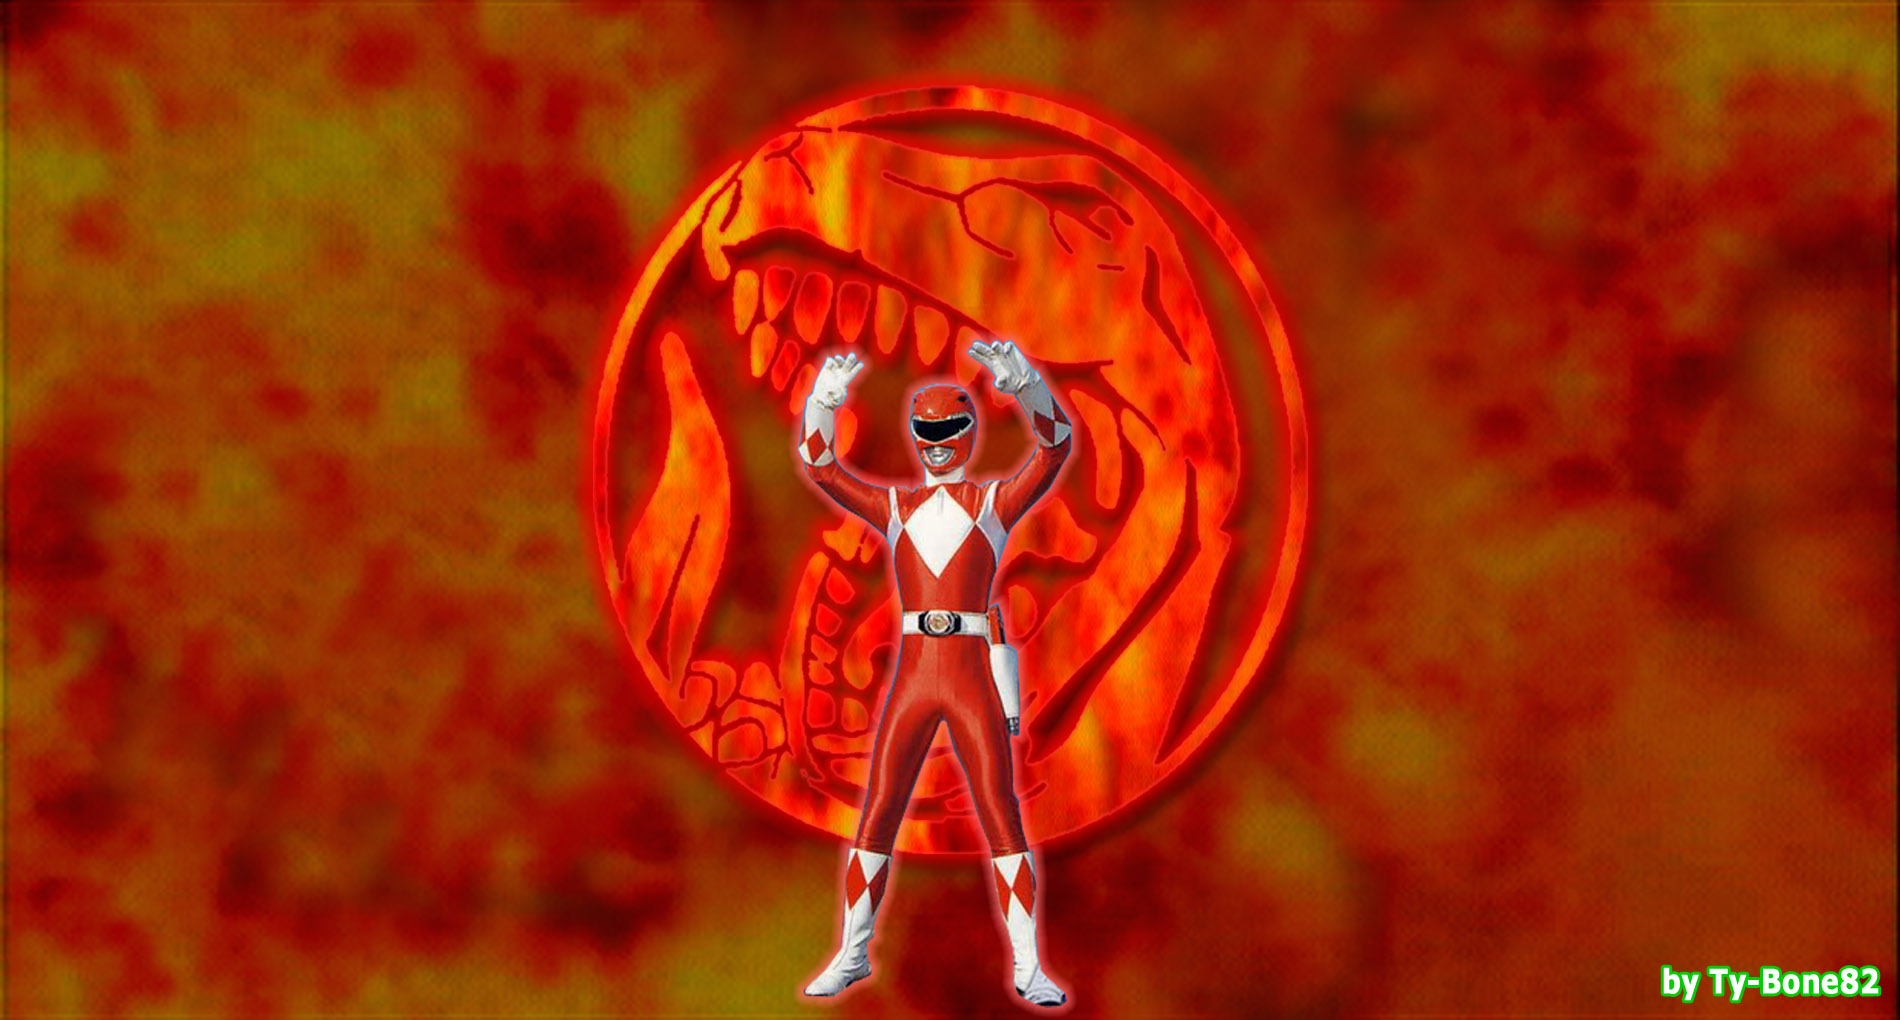 mighty morphin power rangers - red rangersuper-tybone82 on